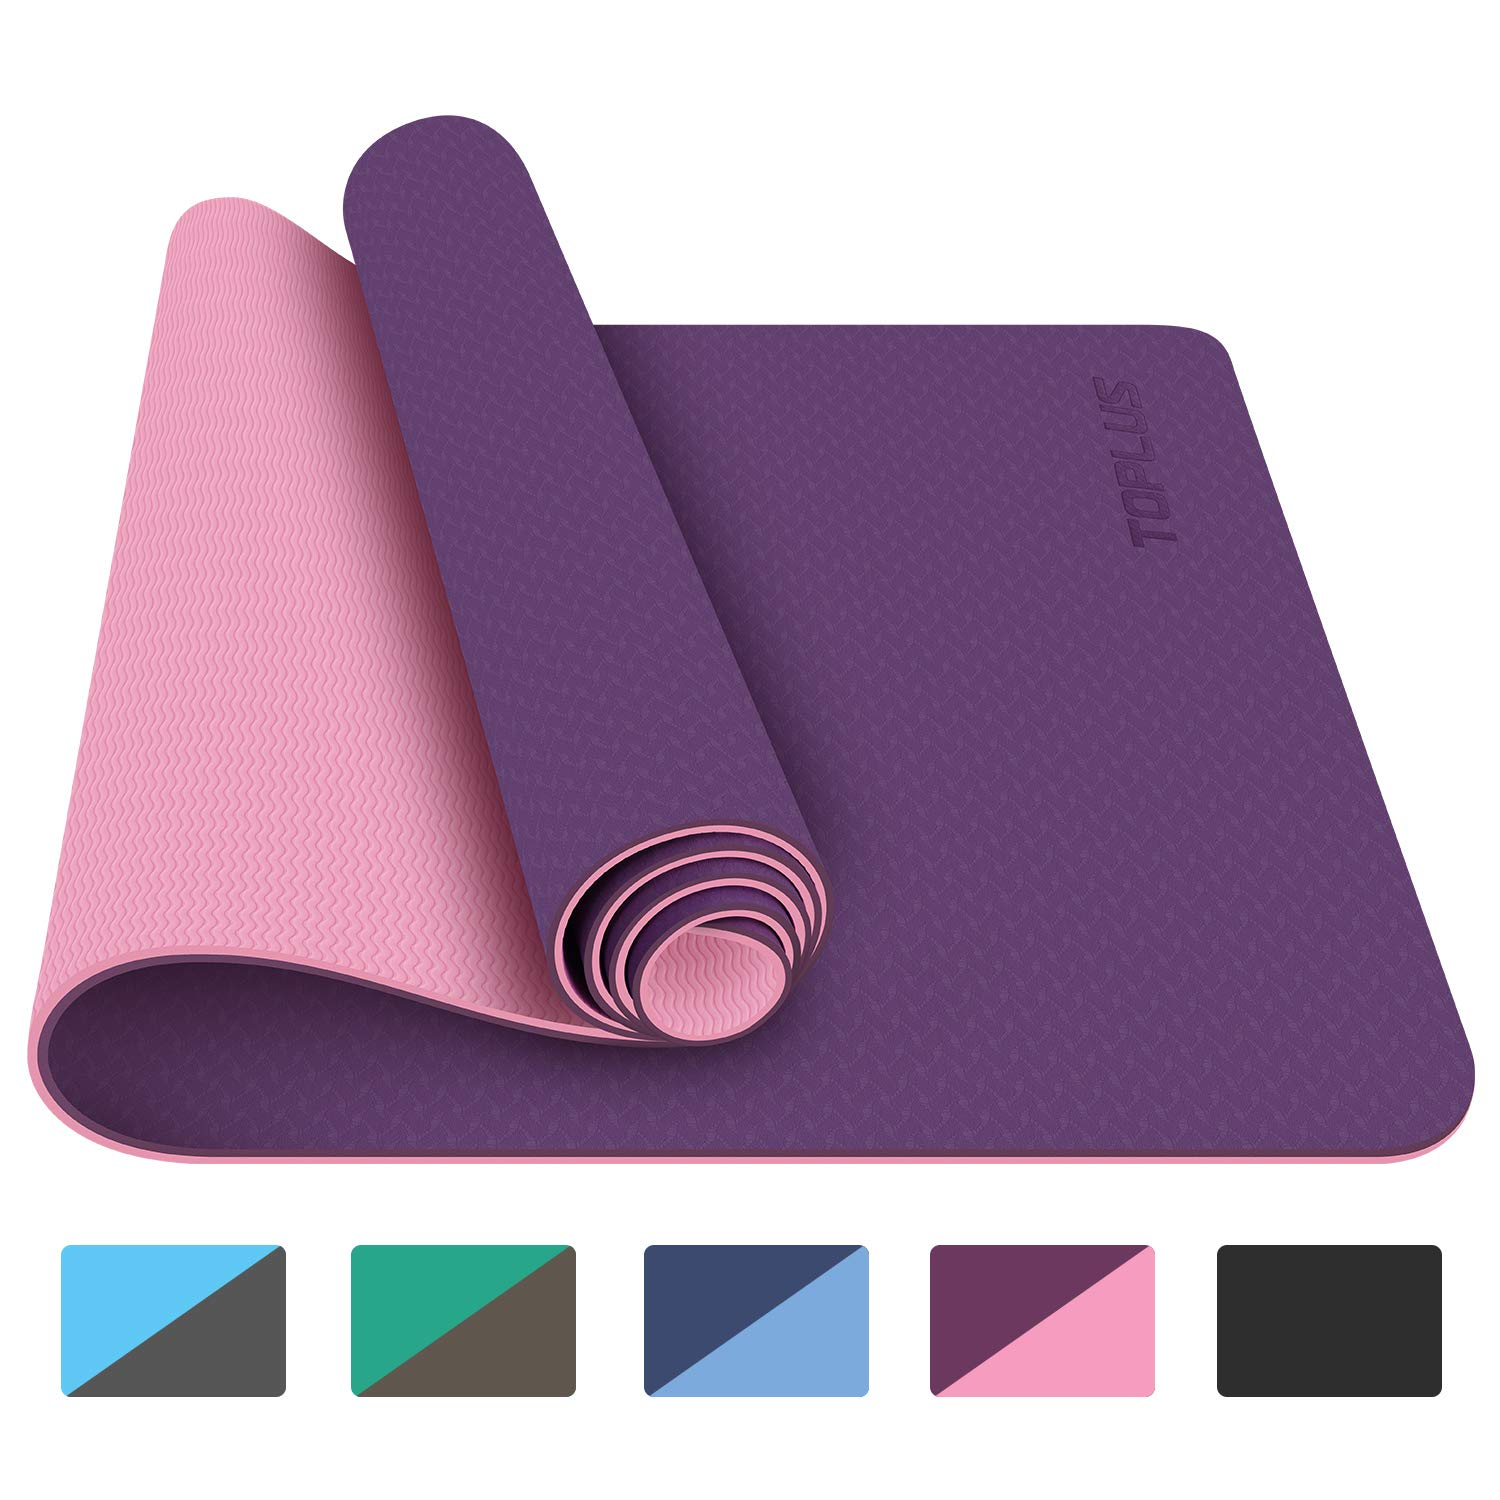 TOPLUS Yoga Mat, 1/4 inch Pro Yoga Mat TPE Eco Friendly Non Slip Fitness Exercise Mat with Carrying Strap-Workout Mat for Yoga, Pilates and Floor Exercises(Purple) by TOPLUS (Image #1)